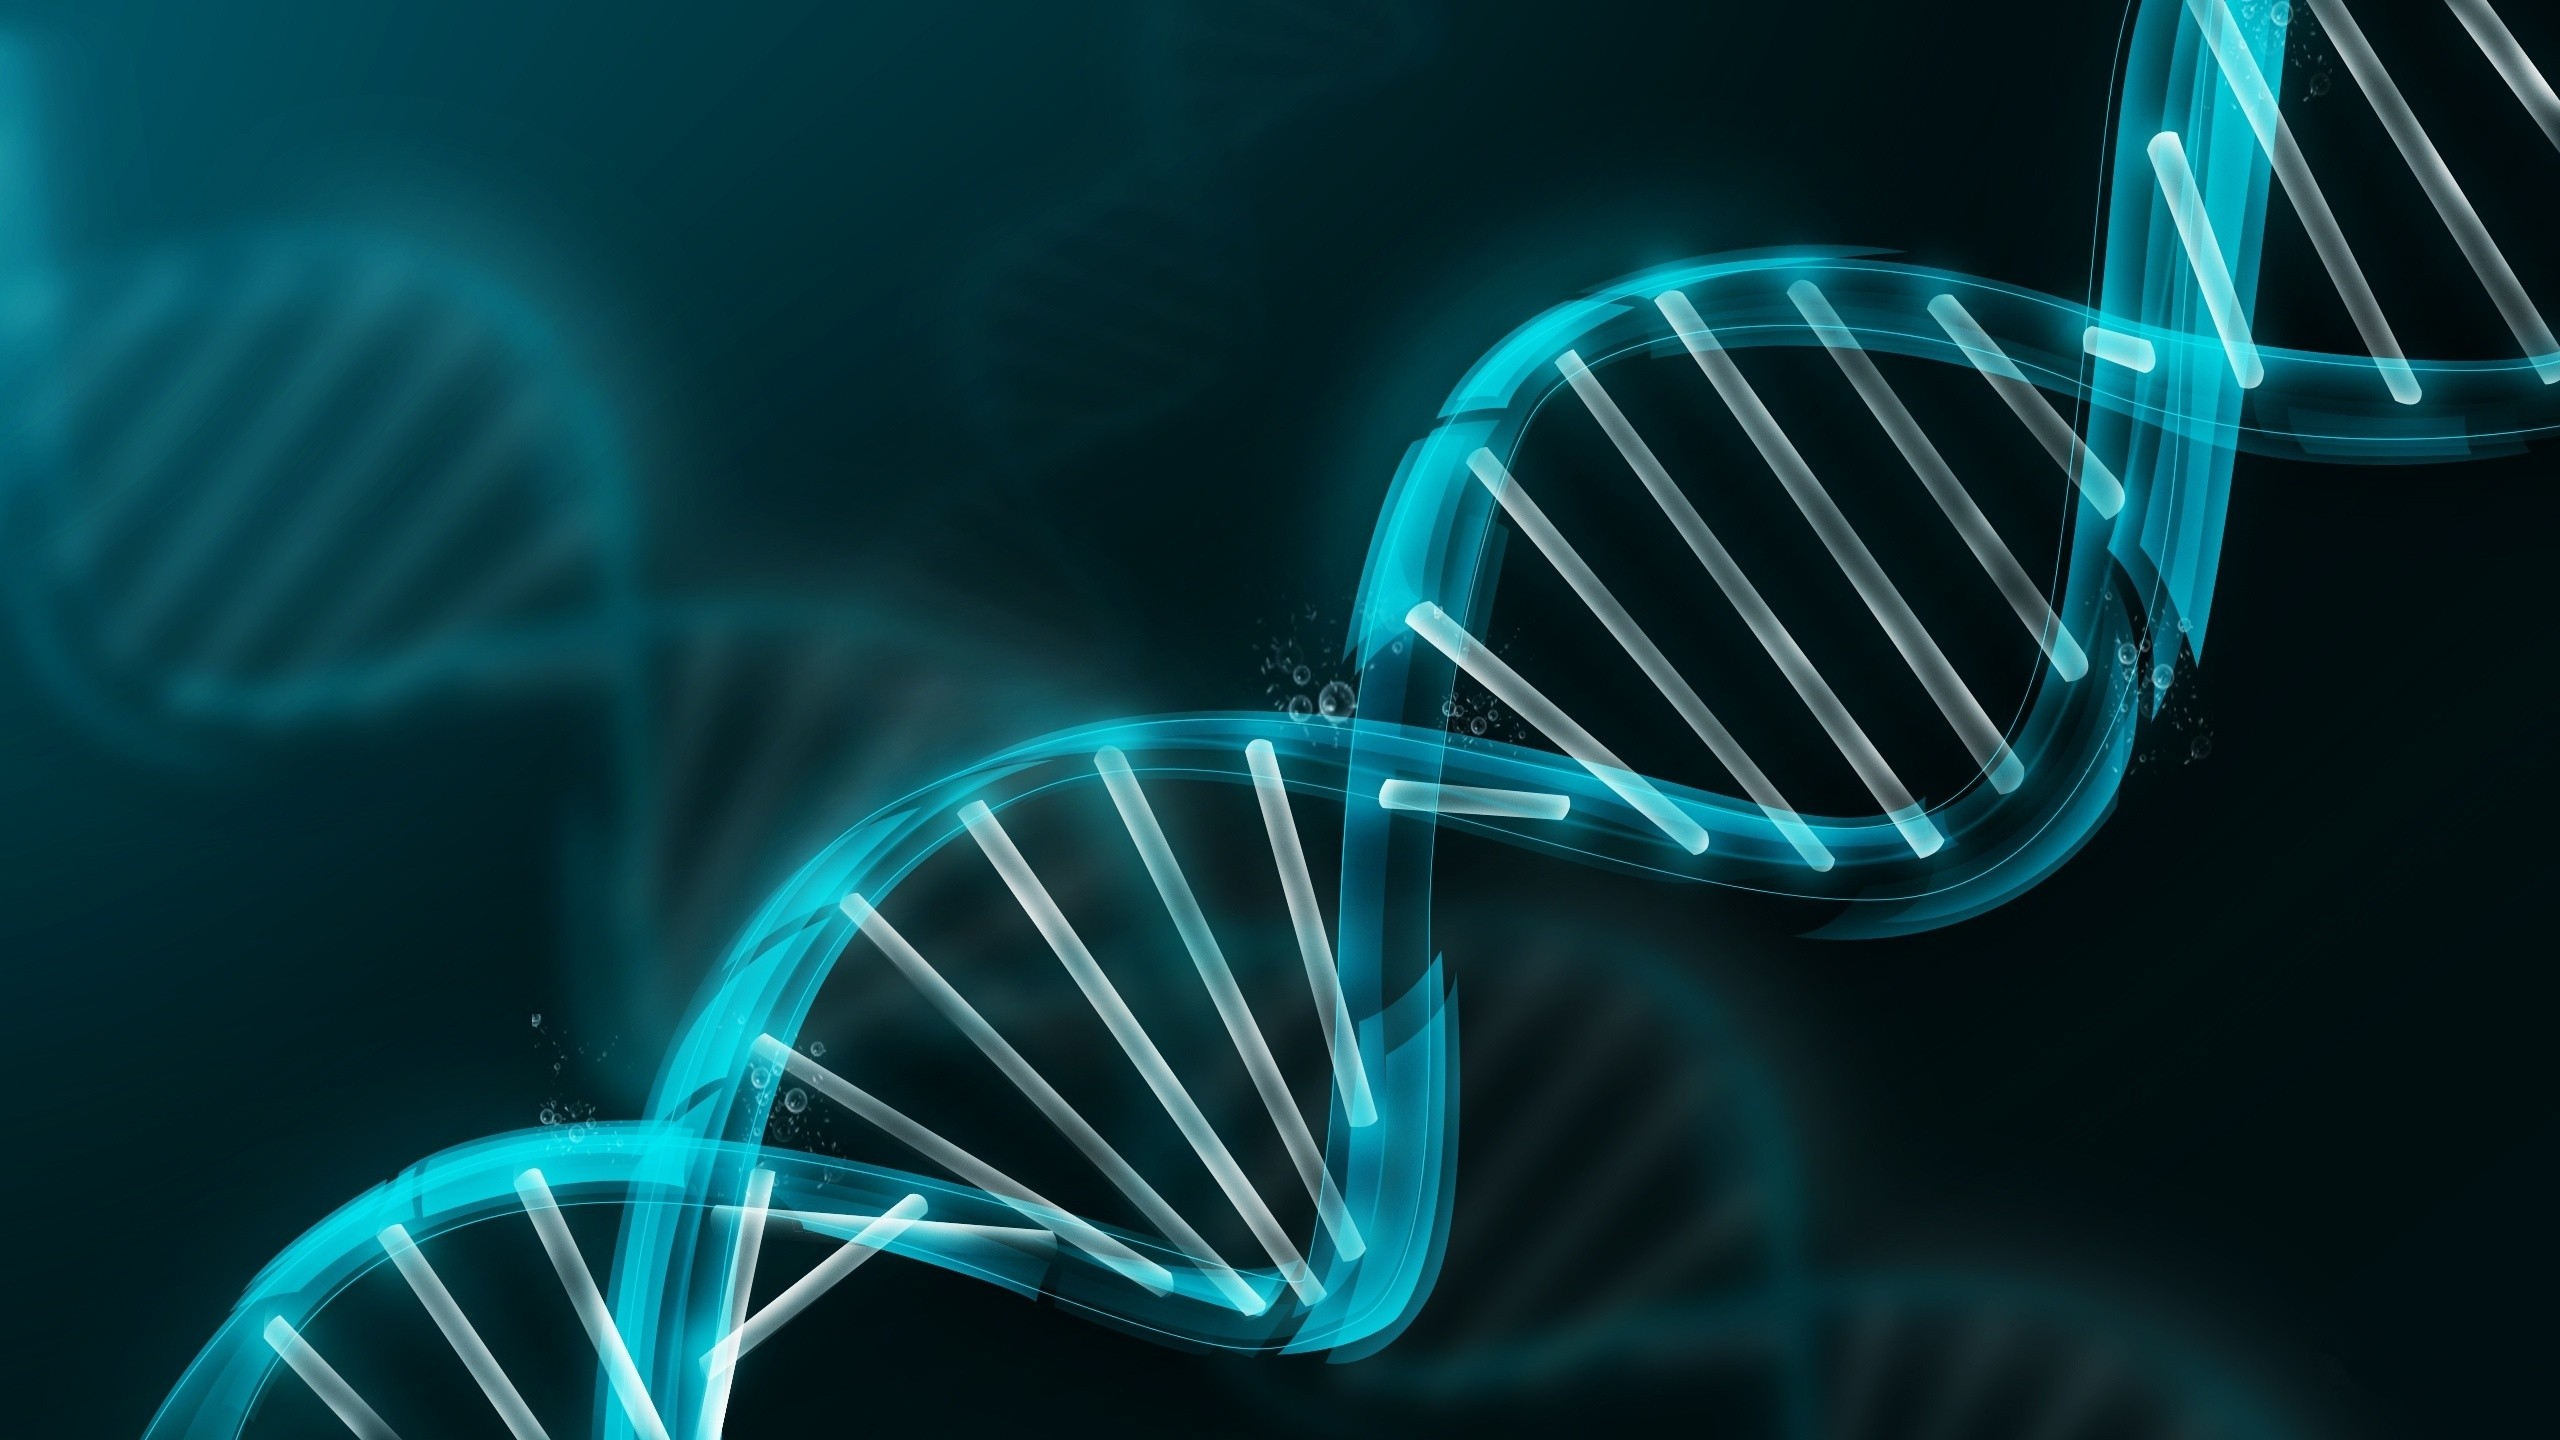 2560x1440 Abstract Molecule DNA Double Helix Wallpapers